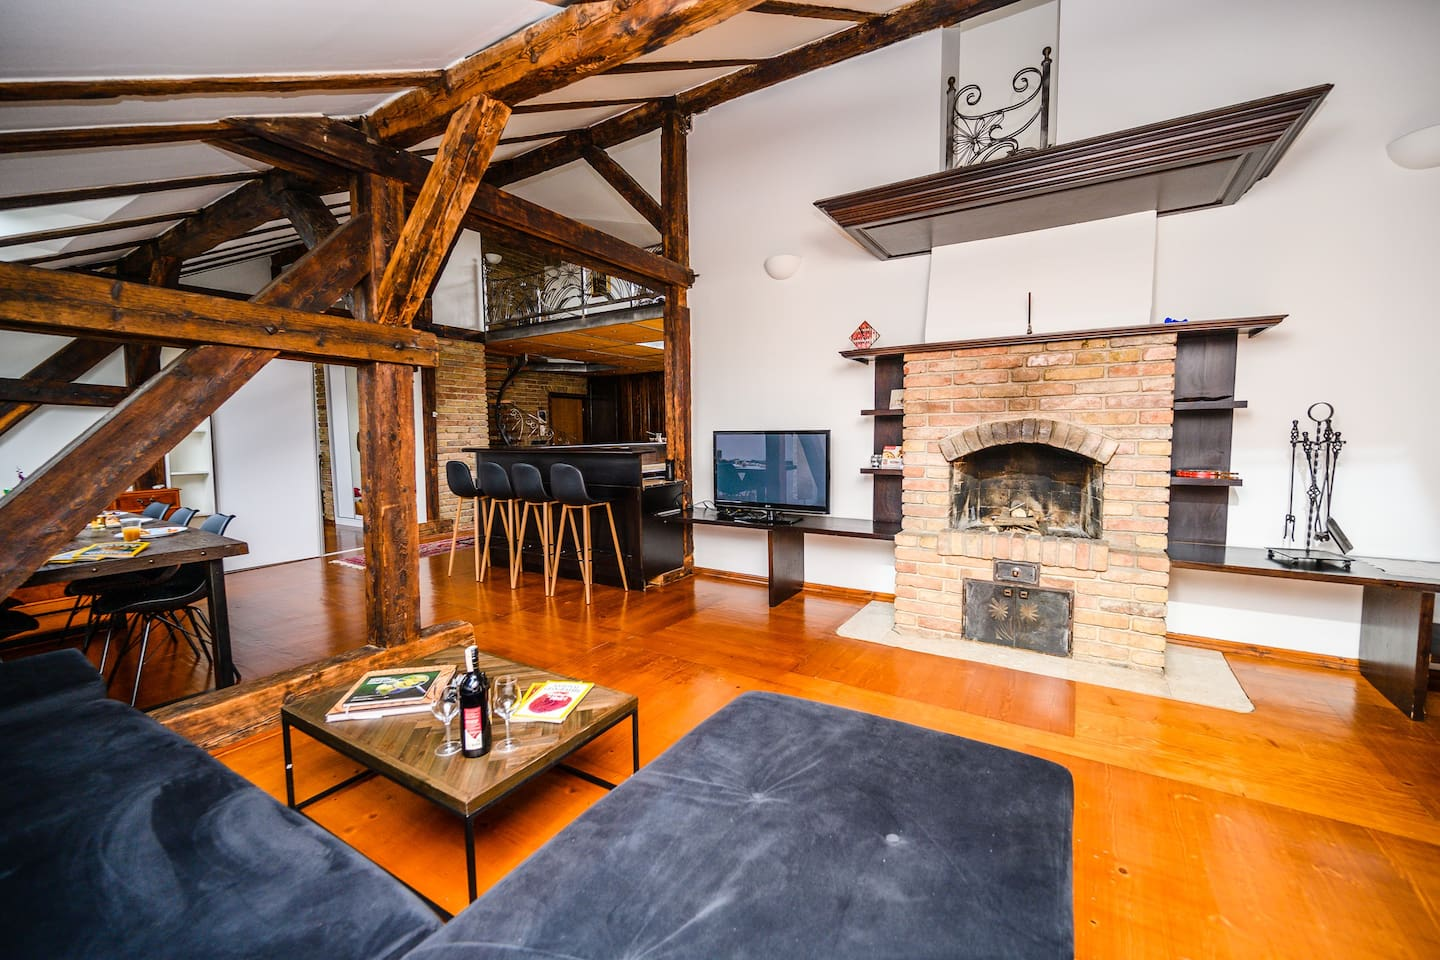 Spacious living room with huge fireplace perfect for enjoying winter days. :)